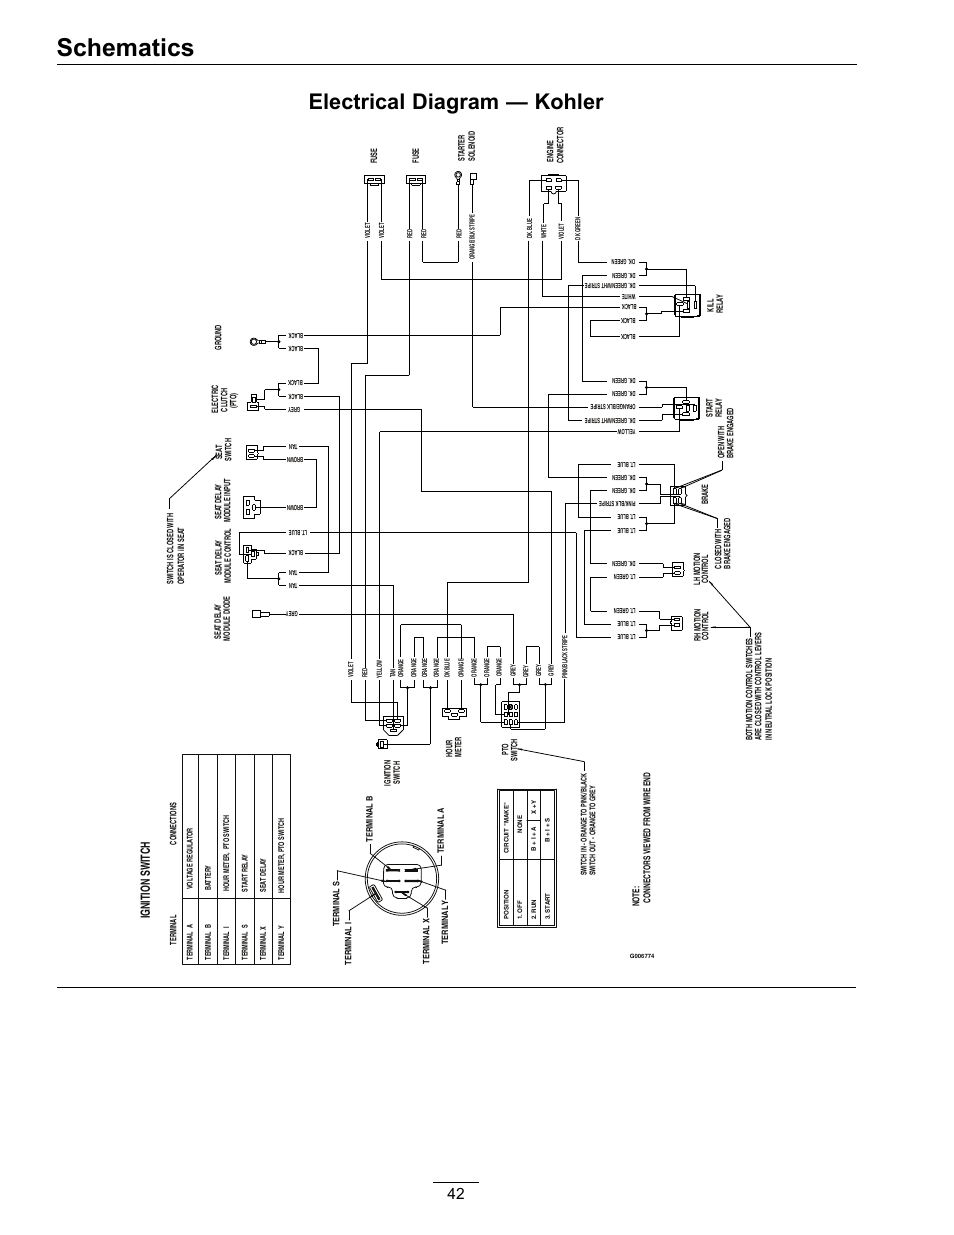 exmark lazer z hp 565 page42 schematics, electrical diagram kohler, ignition switch exmark exmark wiring diagram at sewacar.co